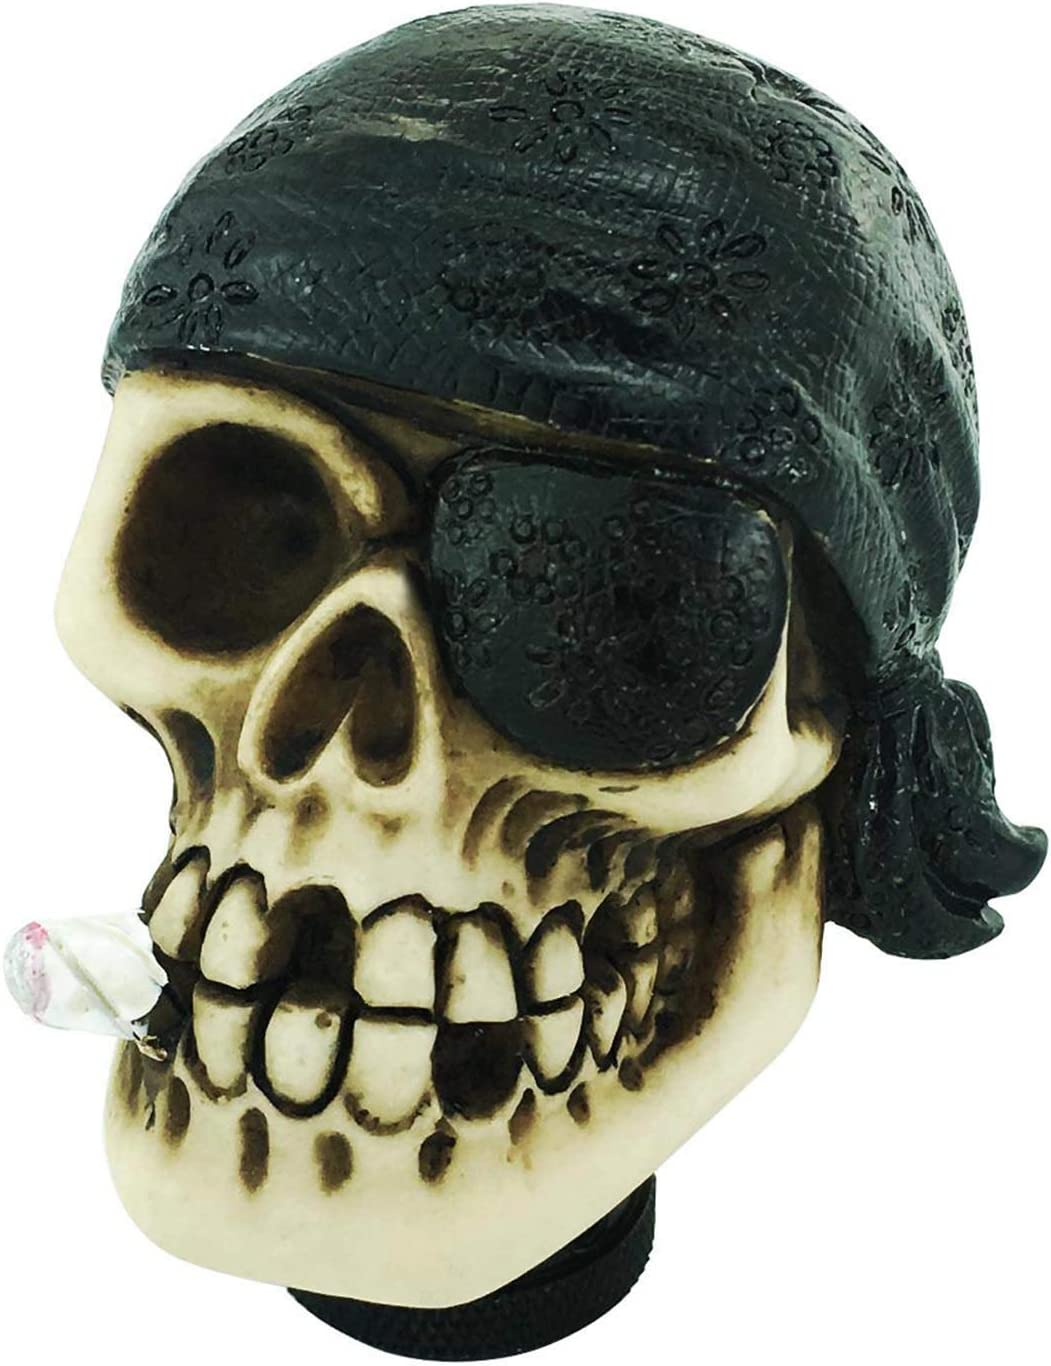 Red Abfer Manual Knob Shifter Skull Gear Shift Stick Car Shifting Knobs One-Eyed Pirate Style Fit Universal Transport Vehicles